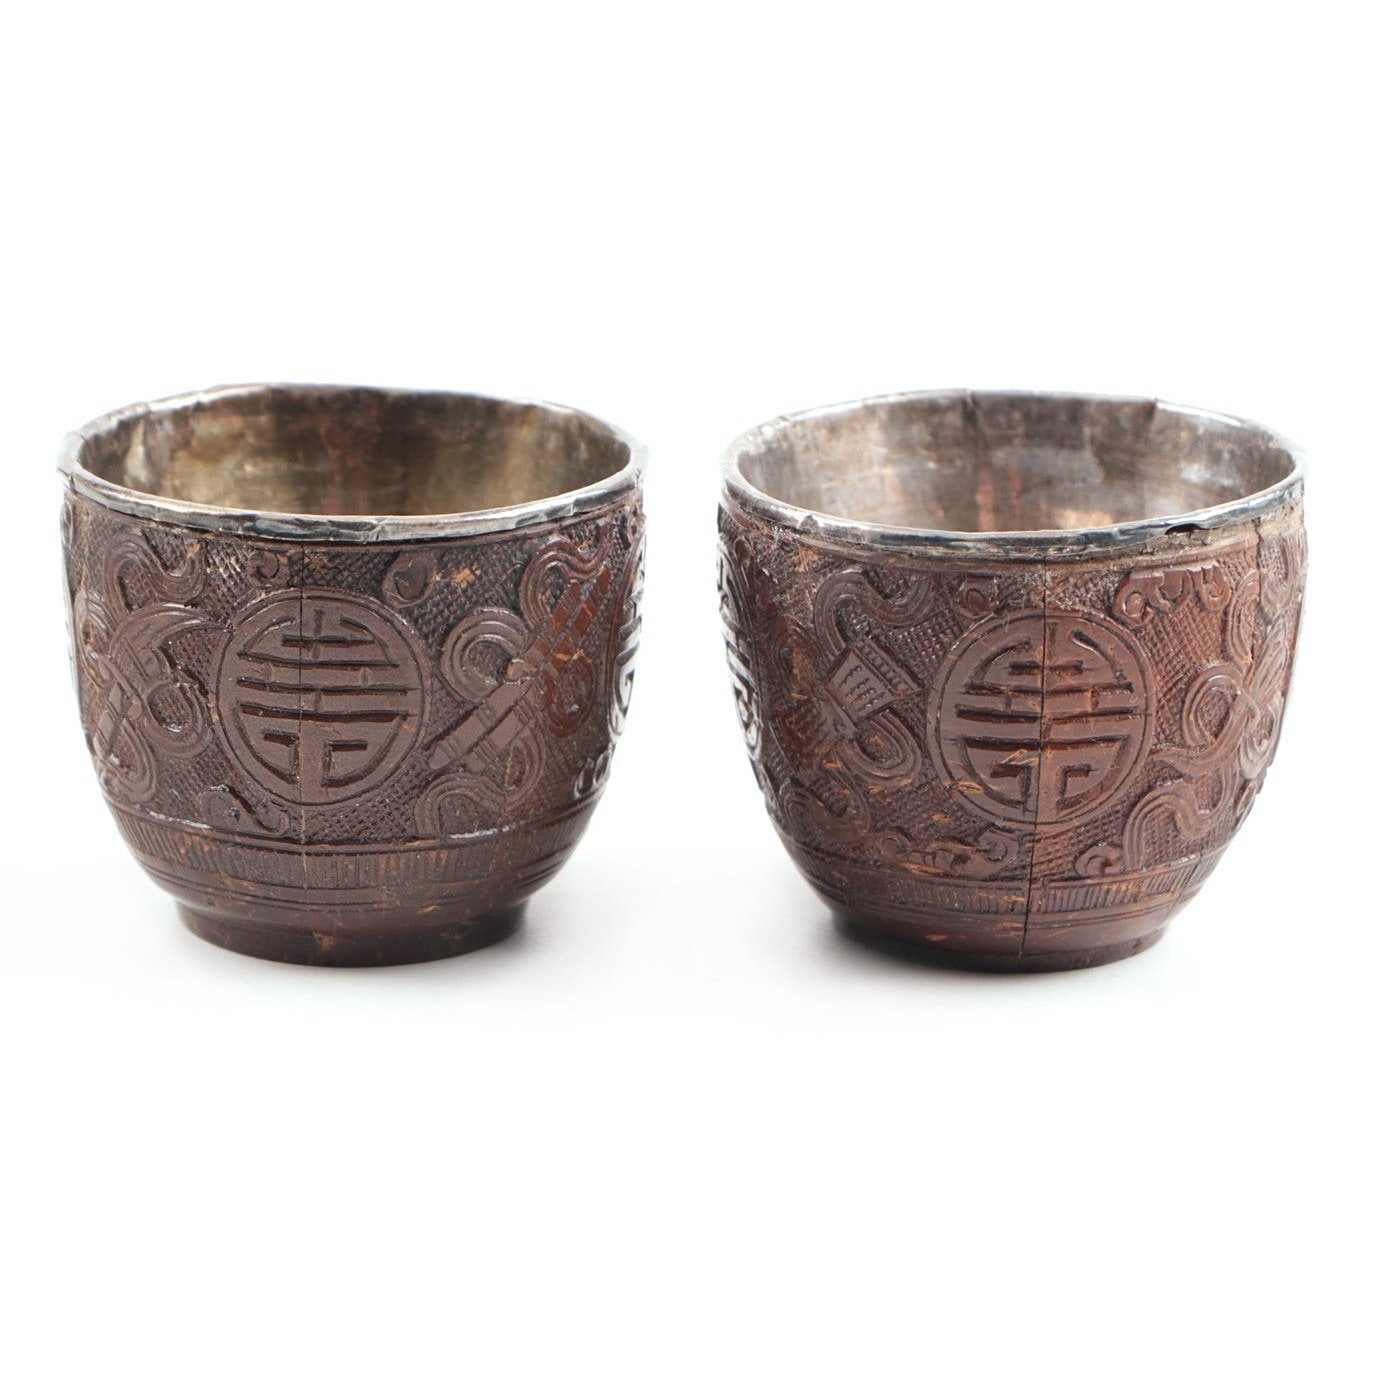 Rare Pair of Chinese Carved Coconut Cups with Silver Liners, Circa 1900